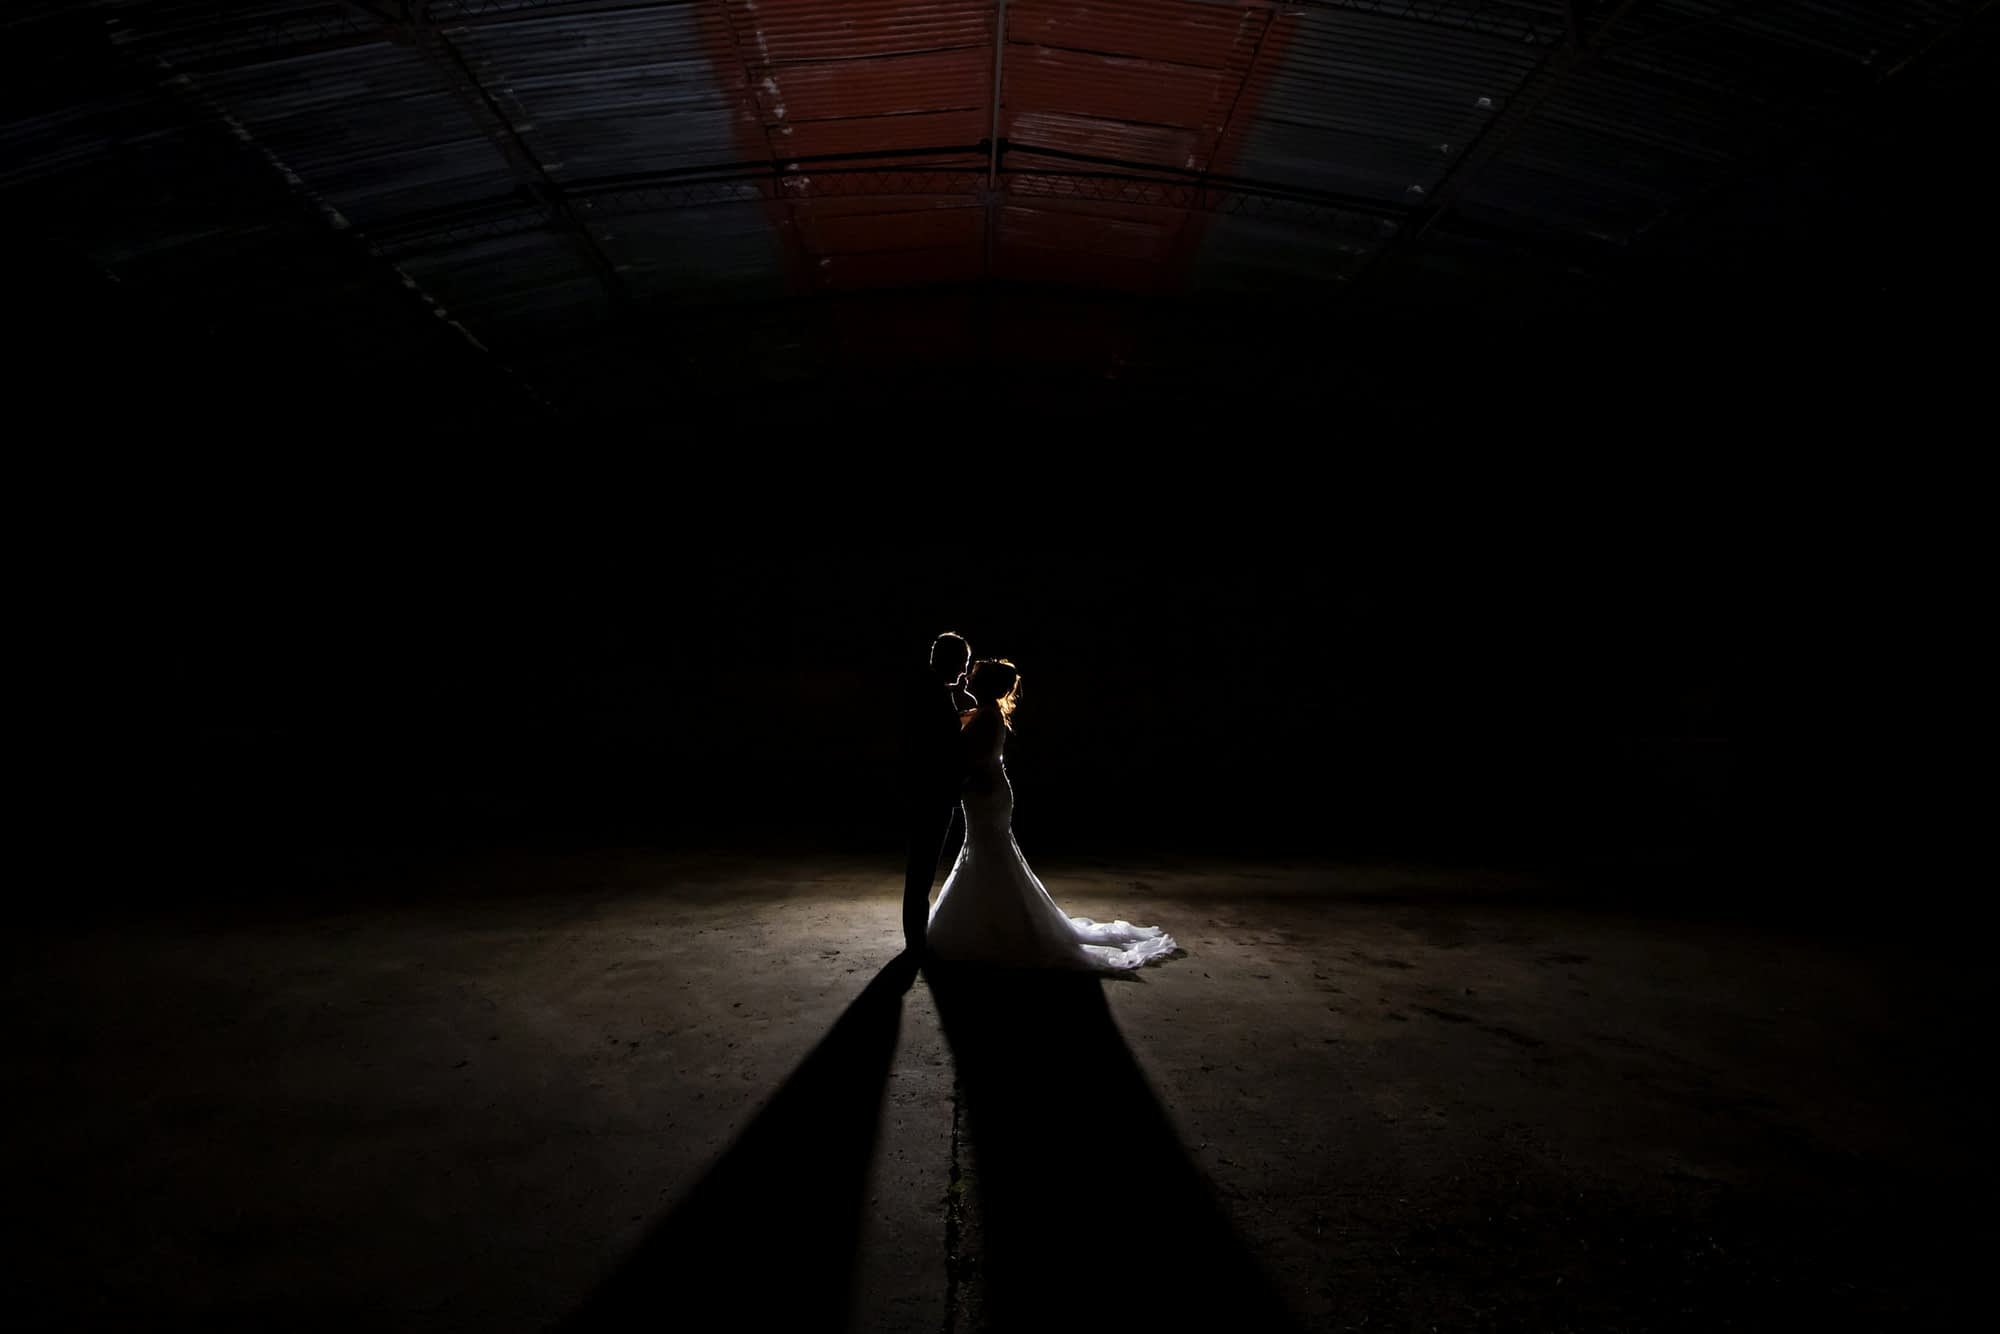 couple standing together in derelict barn at night